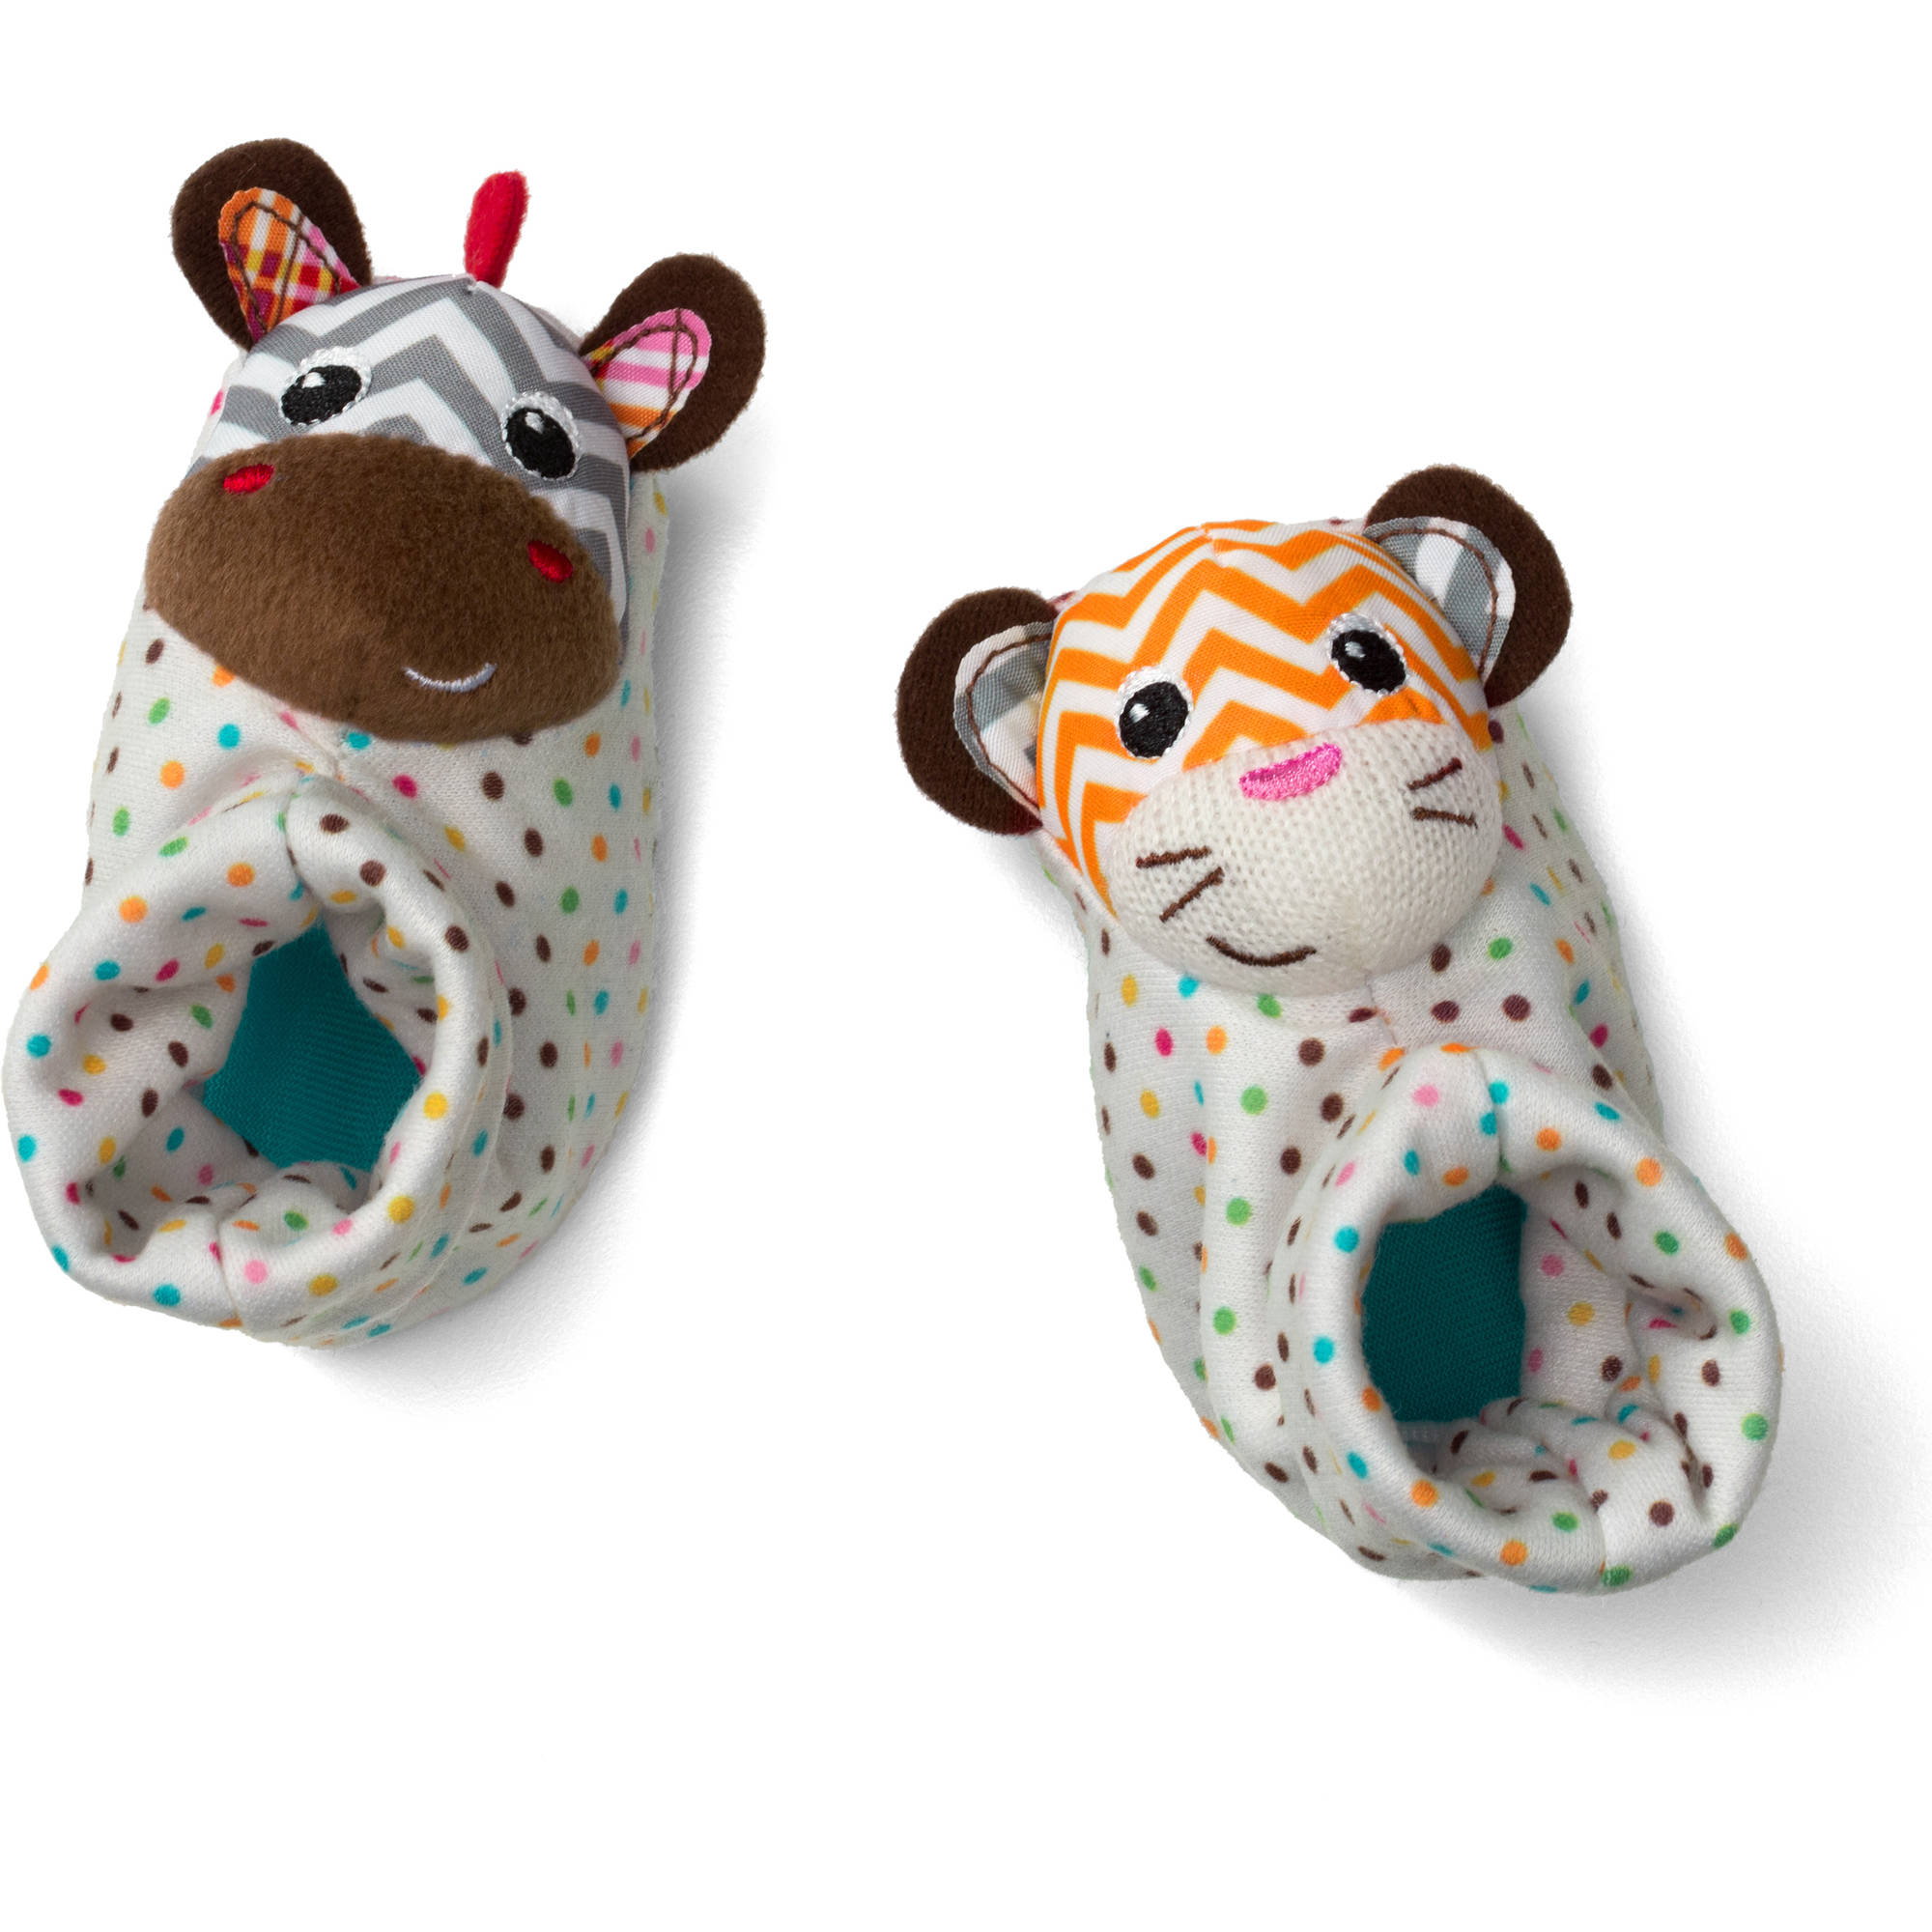 Infantino See Play Go Foot Rattles Zebra & Tiger